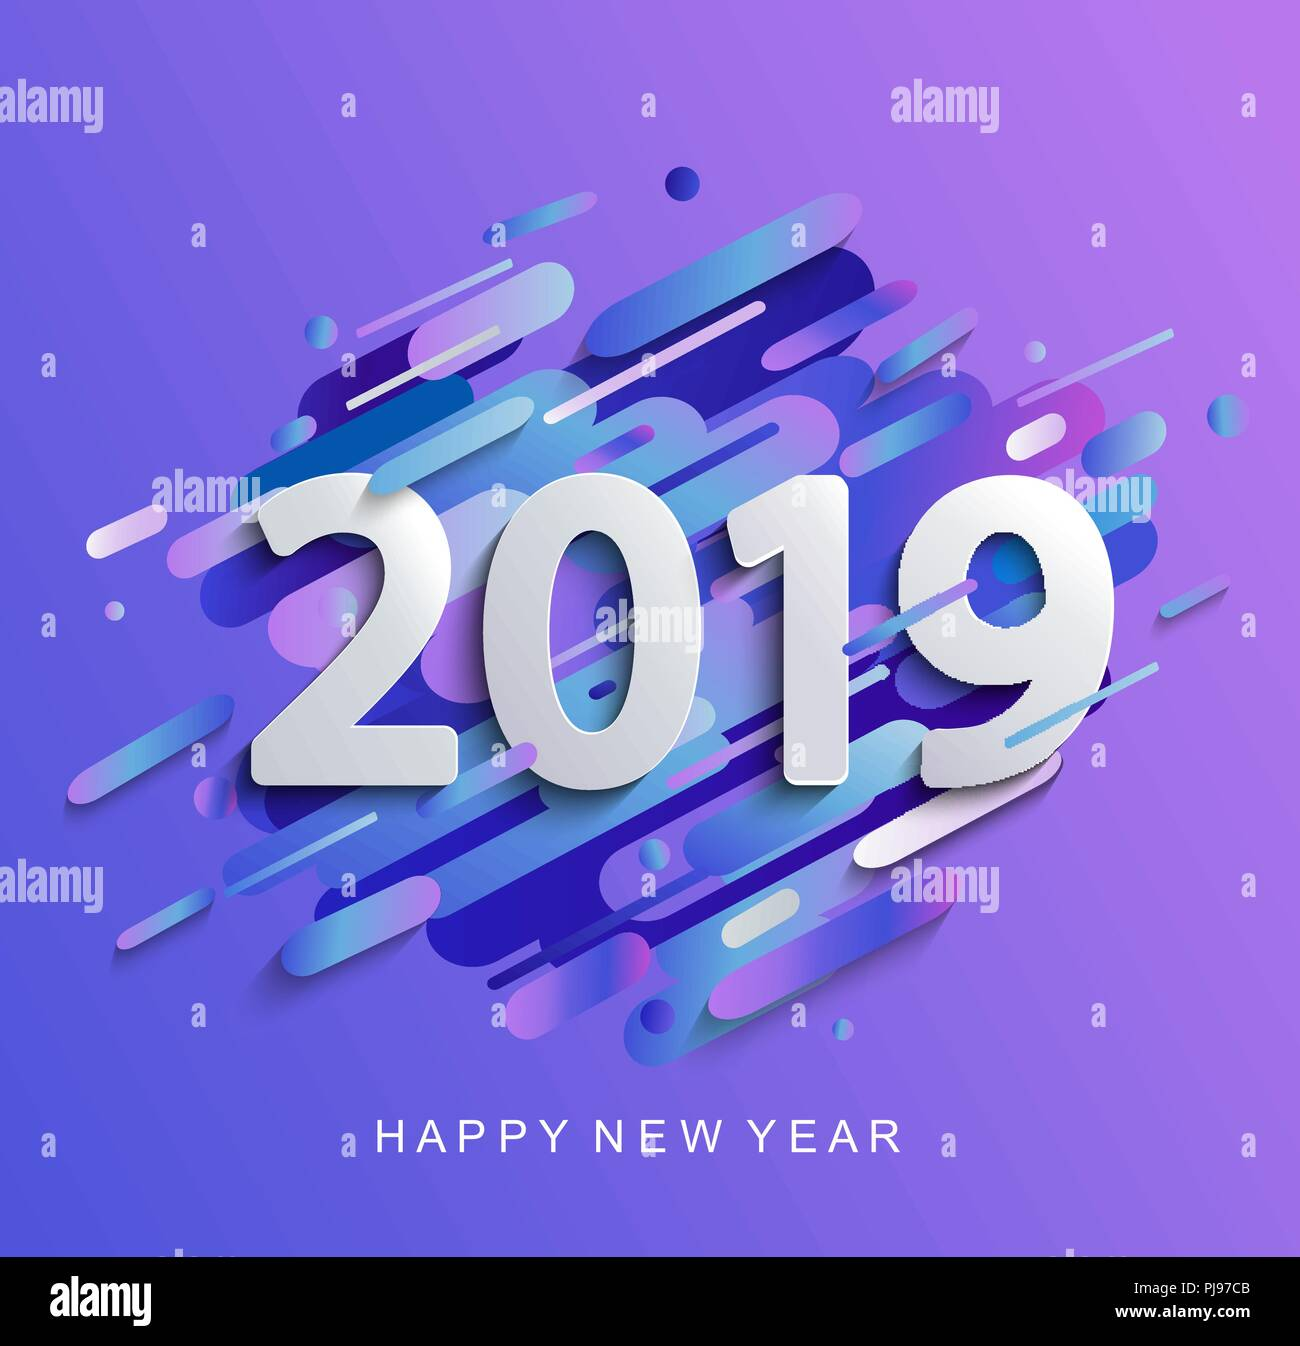 creative happy new year 2019 card on modern gradient dynamic background perfect for presentations